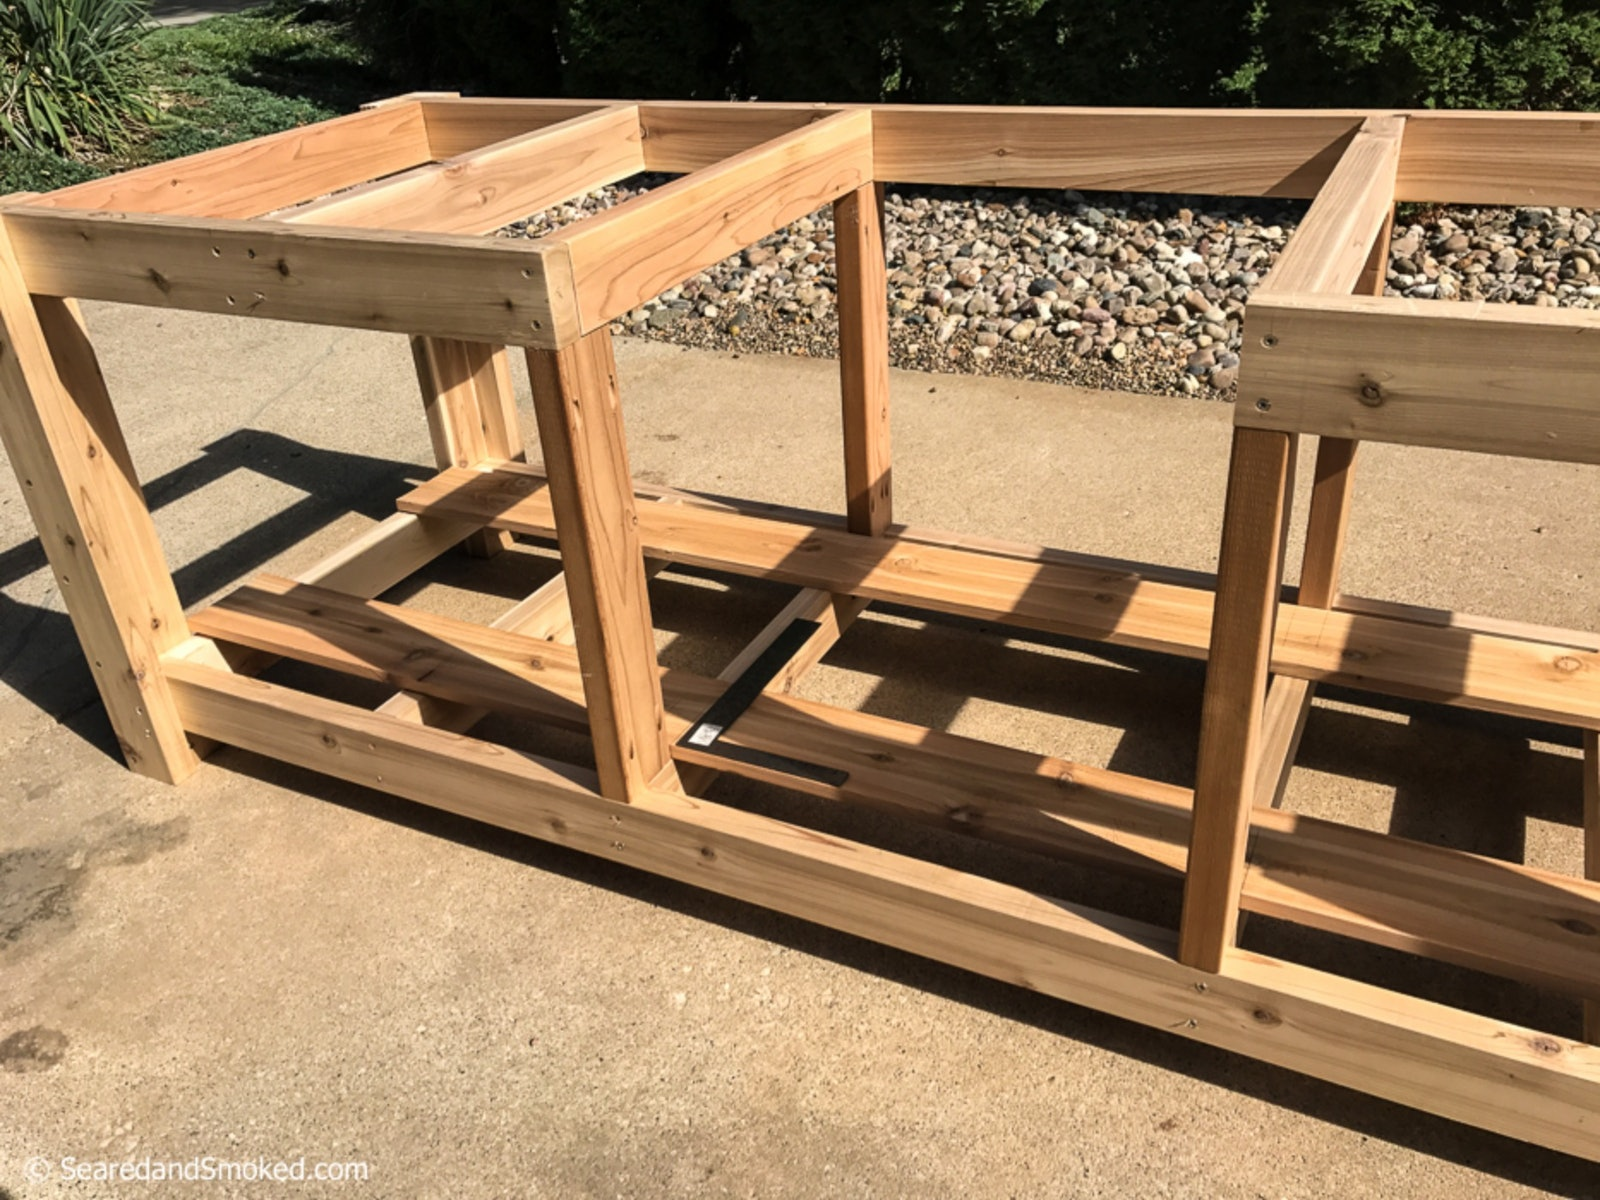 Build Your Own Kamado Grill Table - Kamado Grill Table Plans